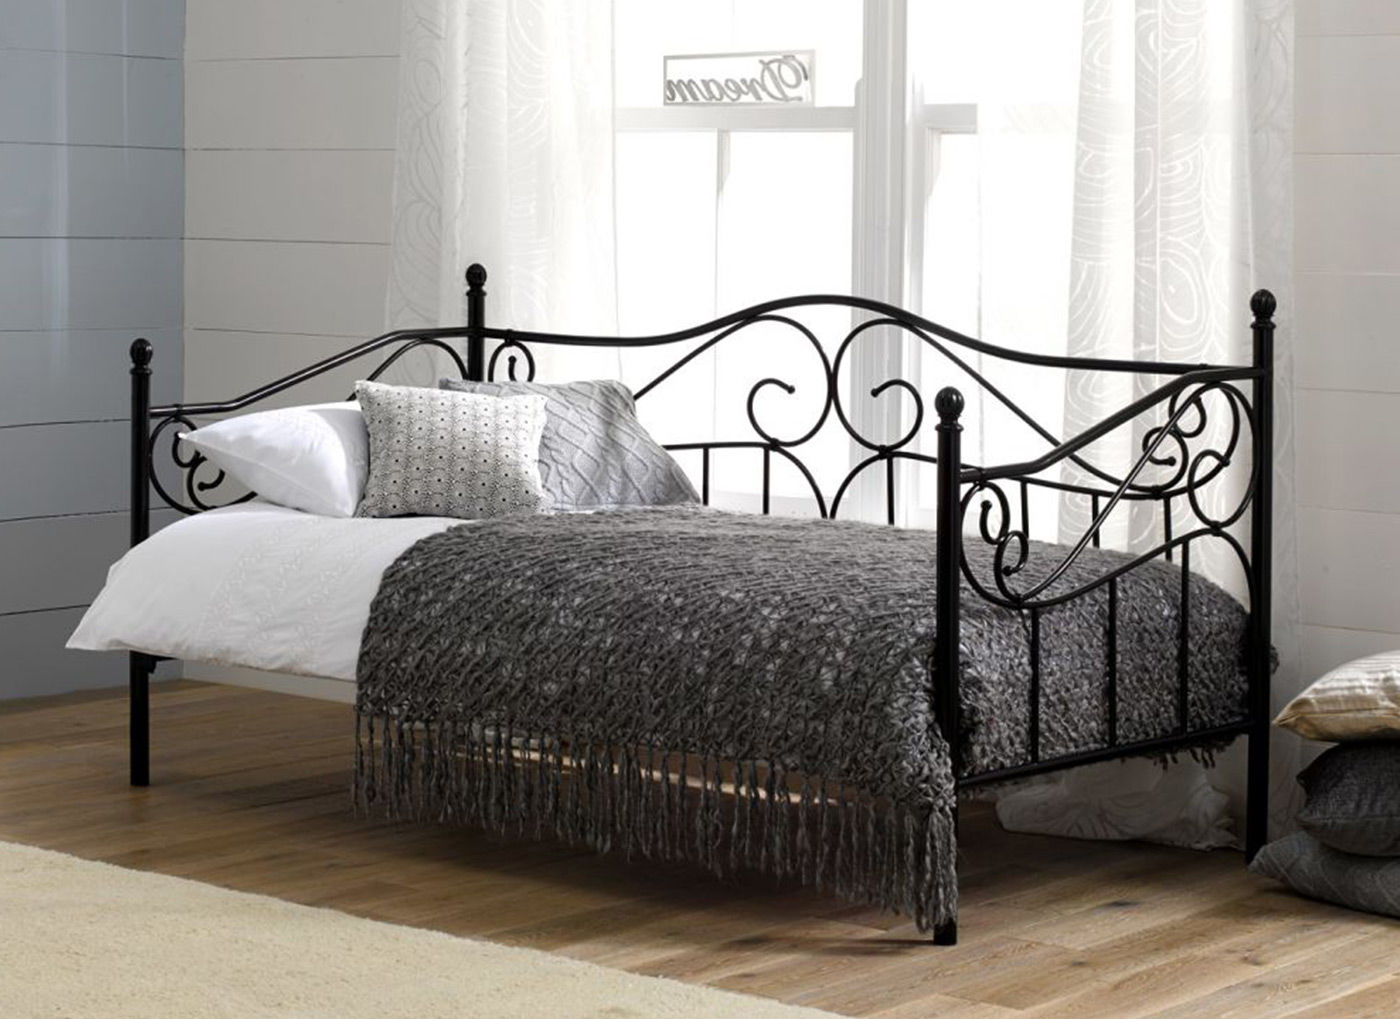 Trendy day beds good looking black metal daybed amy day ps bed image.jpg bedroom full pwoxyuz